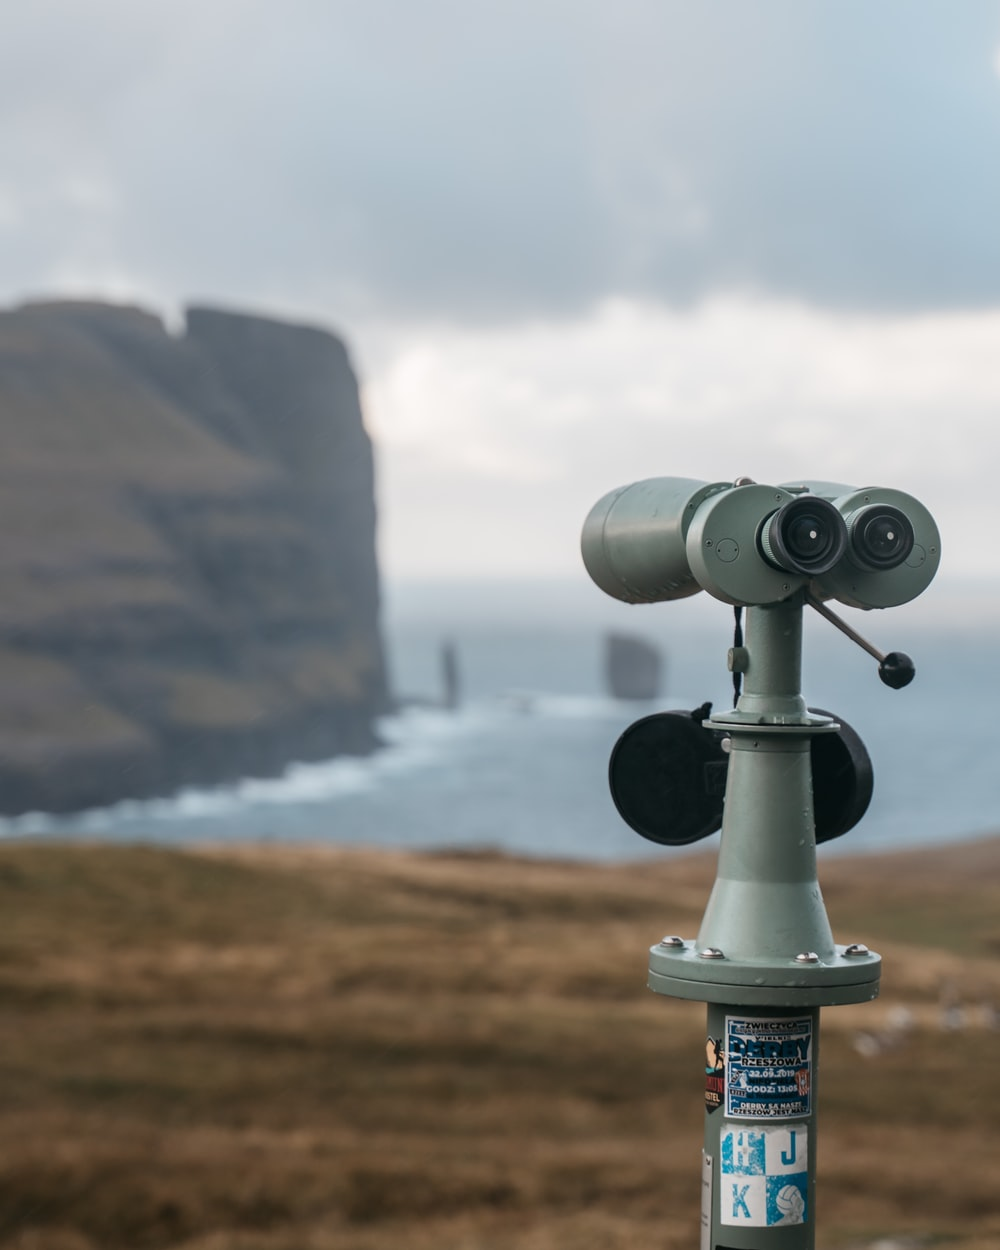 black and gray binoculars on brown rock formation near body of water during daytime